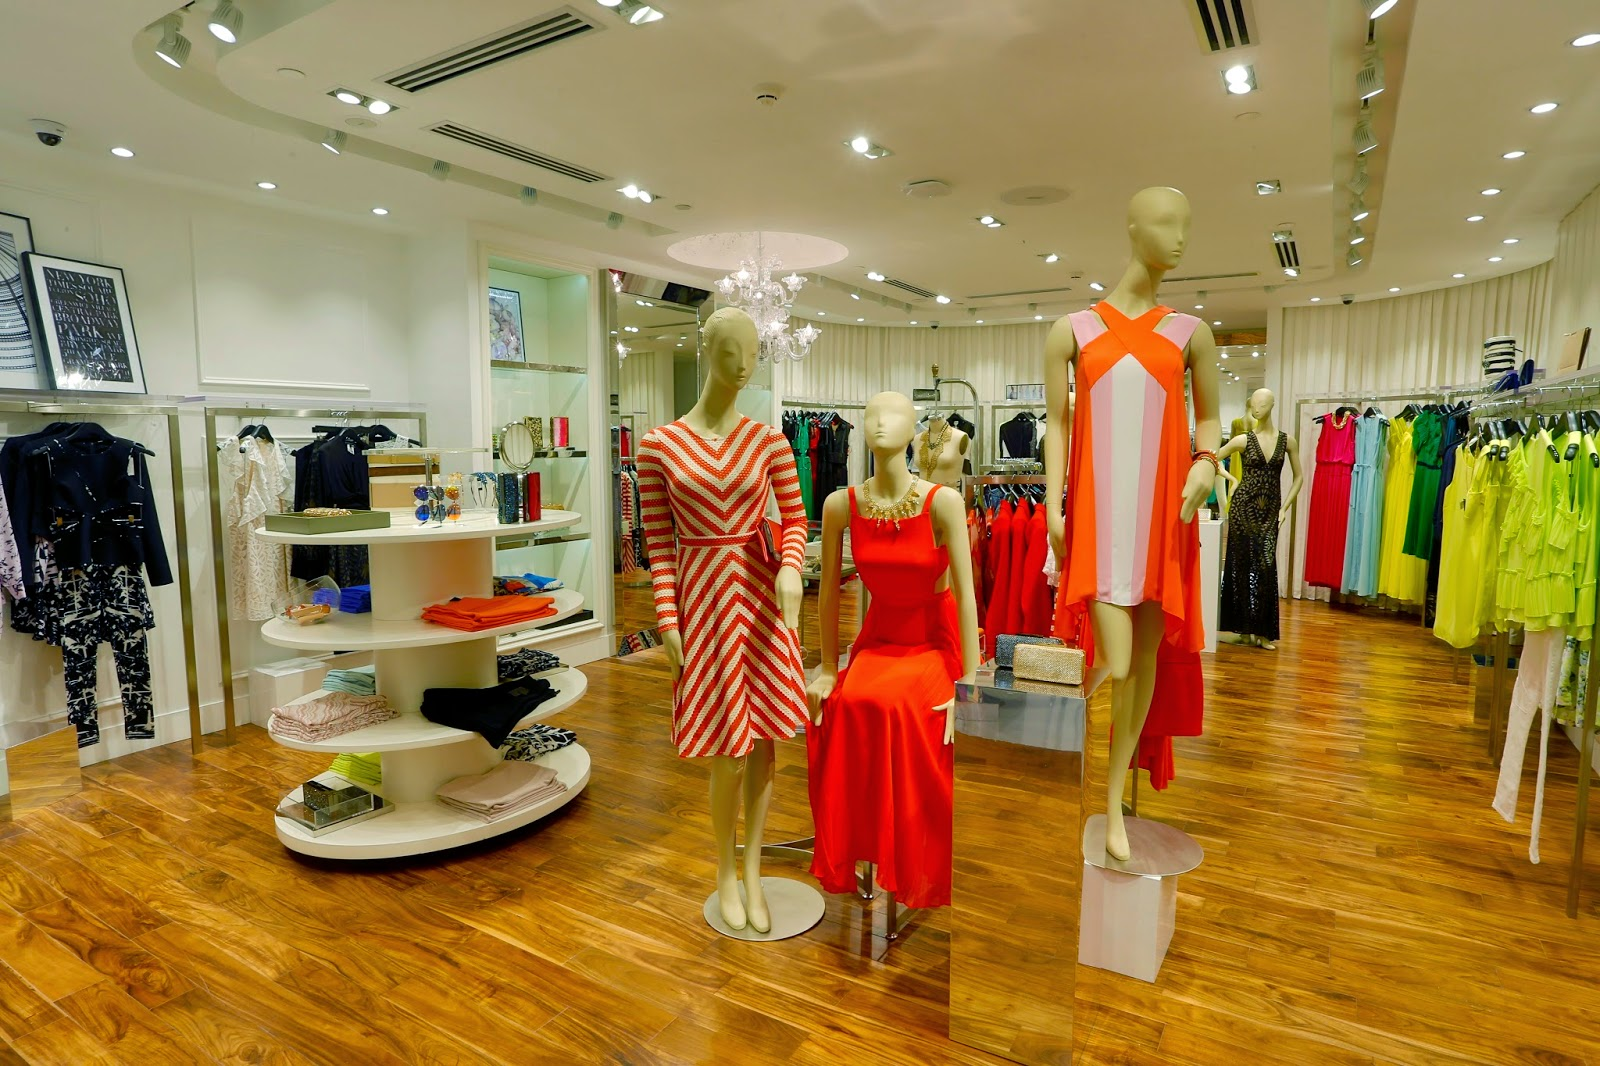 BCBGMAXAZRIA Store at DLF Emporio, New Delhi